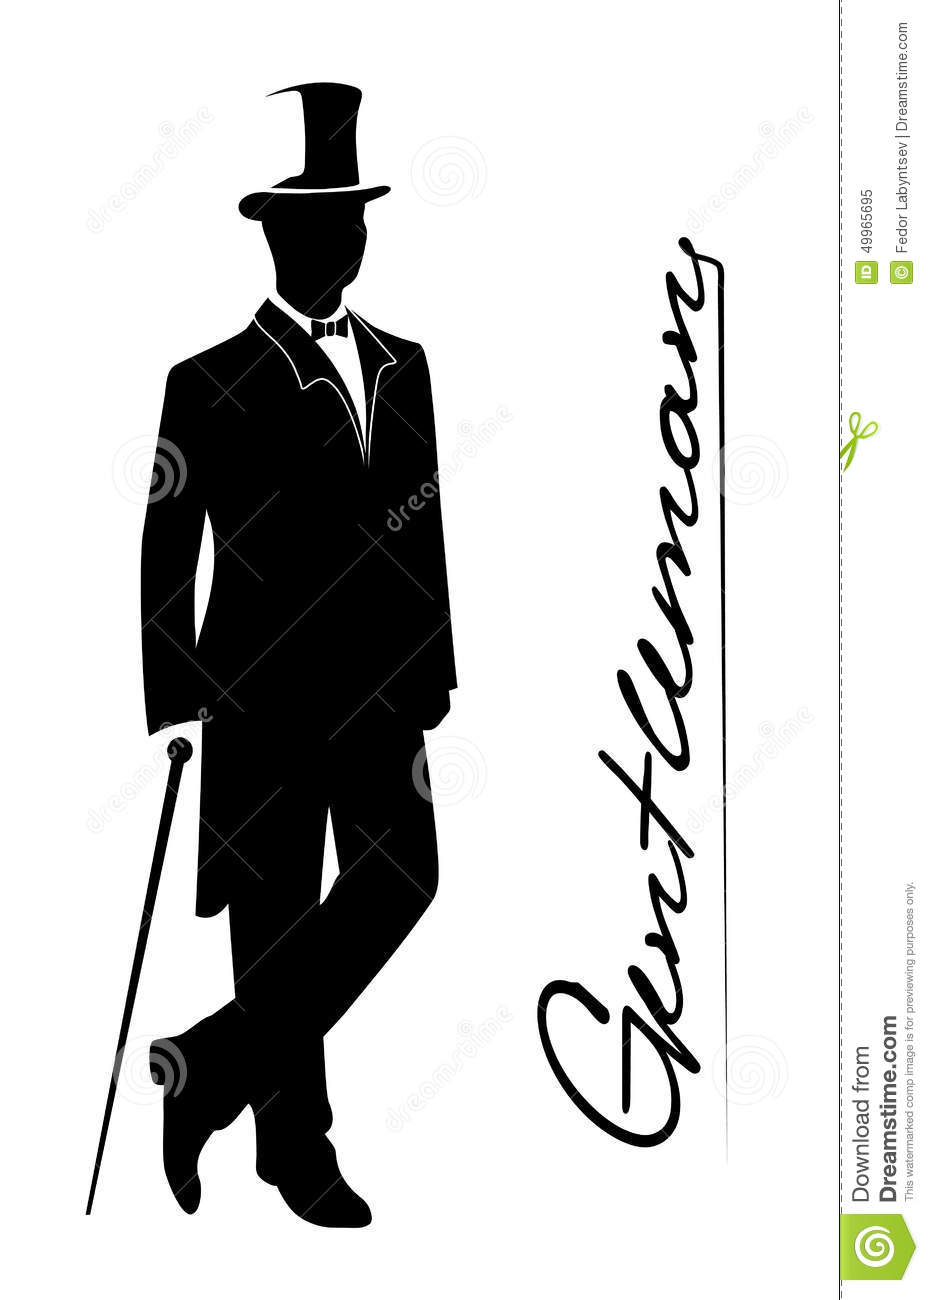 Gentleman Silhouette Stock Photos and Images  alamycom